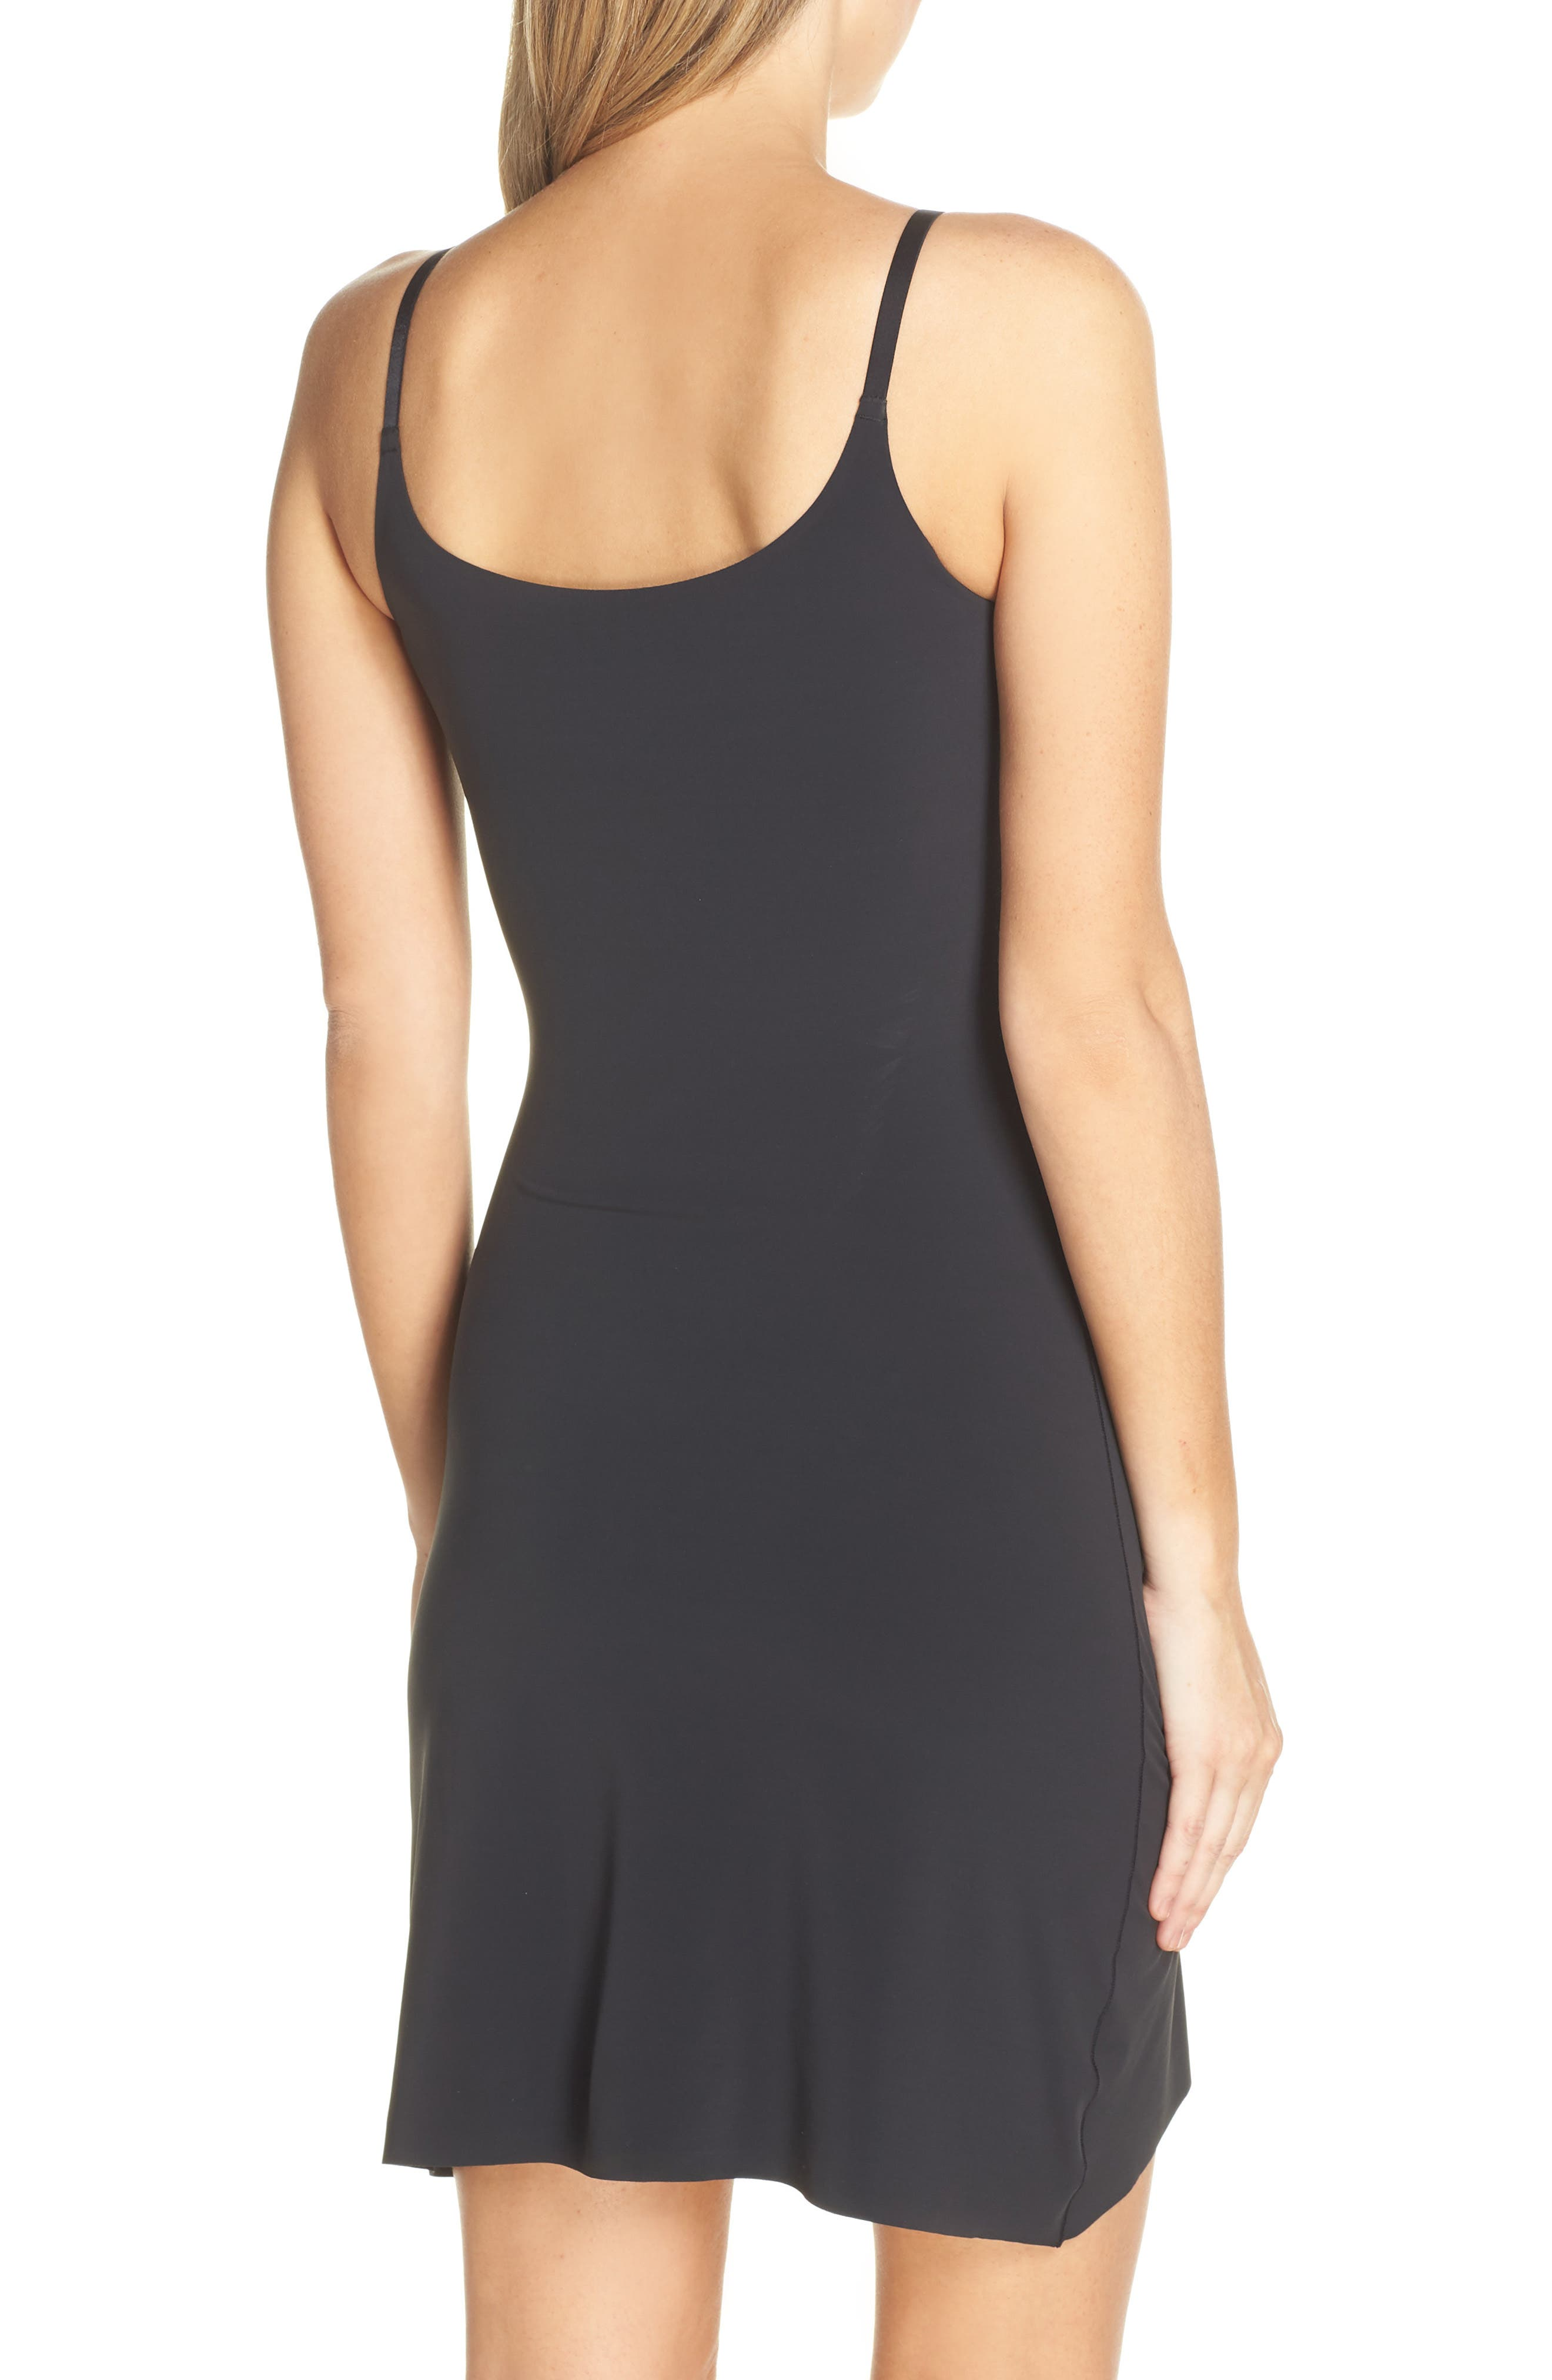 YUMMIE, Smooth Solutions A-Line Slip, Alternate thumbnail 2, color, BLACK